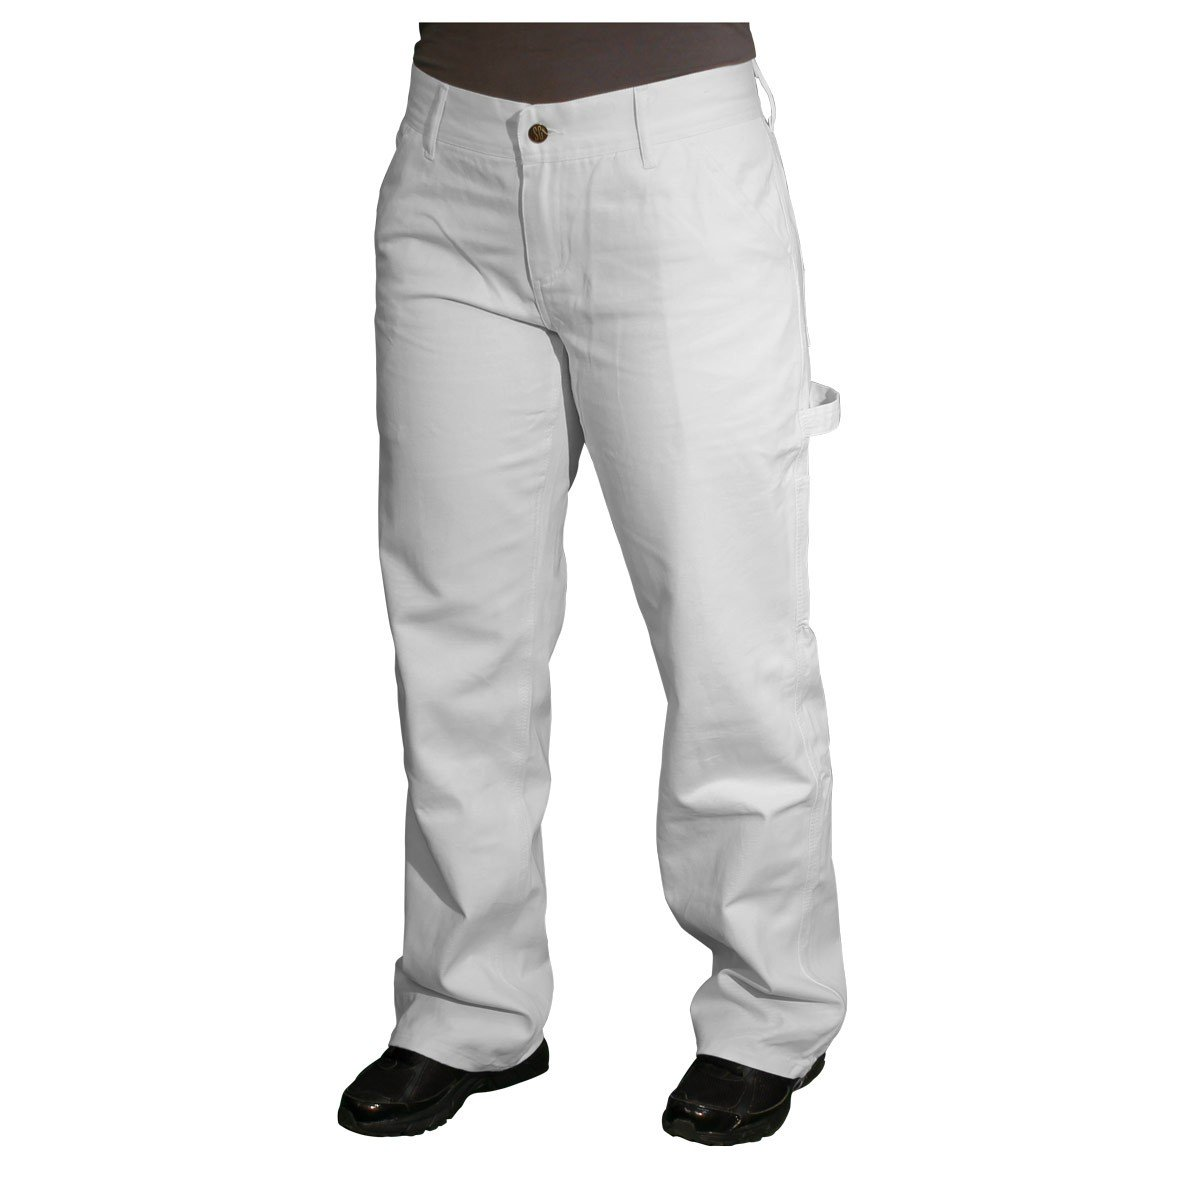 Safety Girl Painters Pants (14 Tall, White)